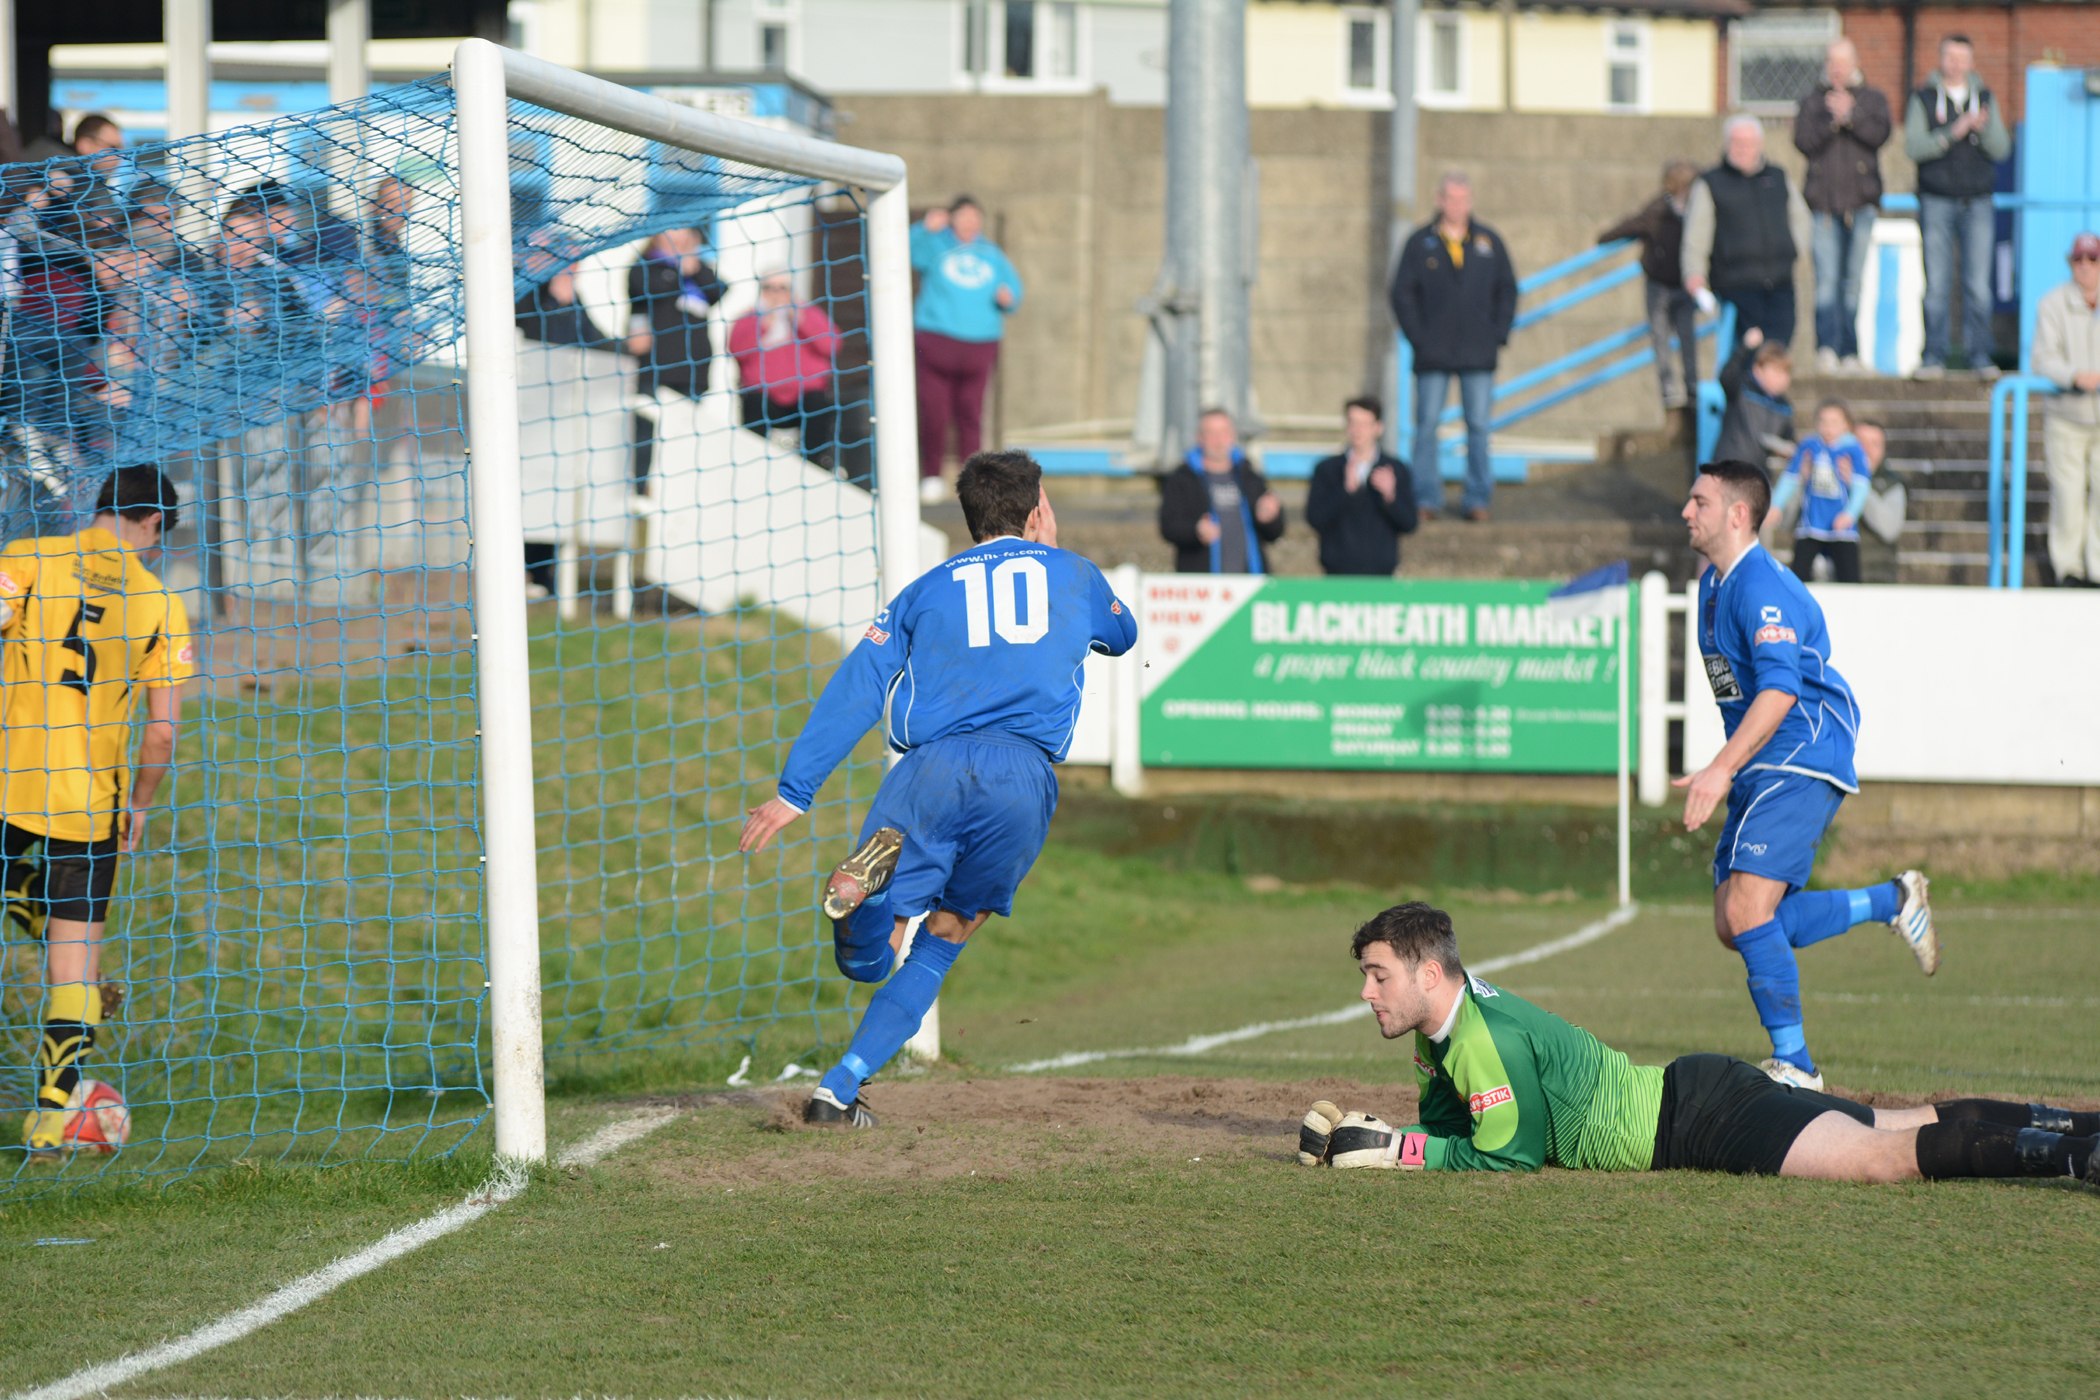 Halesowen's Ben Haseley wheels away after scoring against Belper.